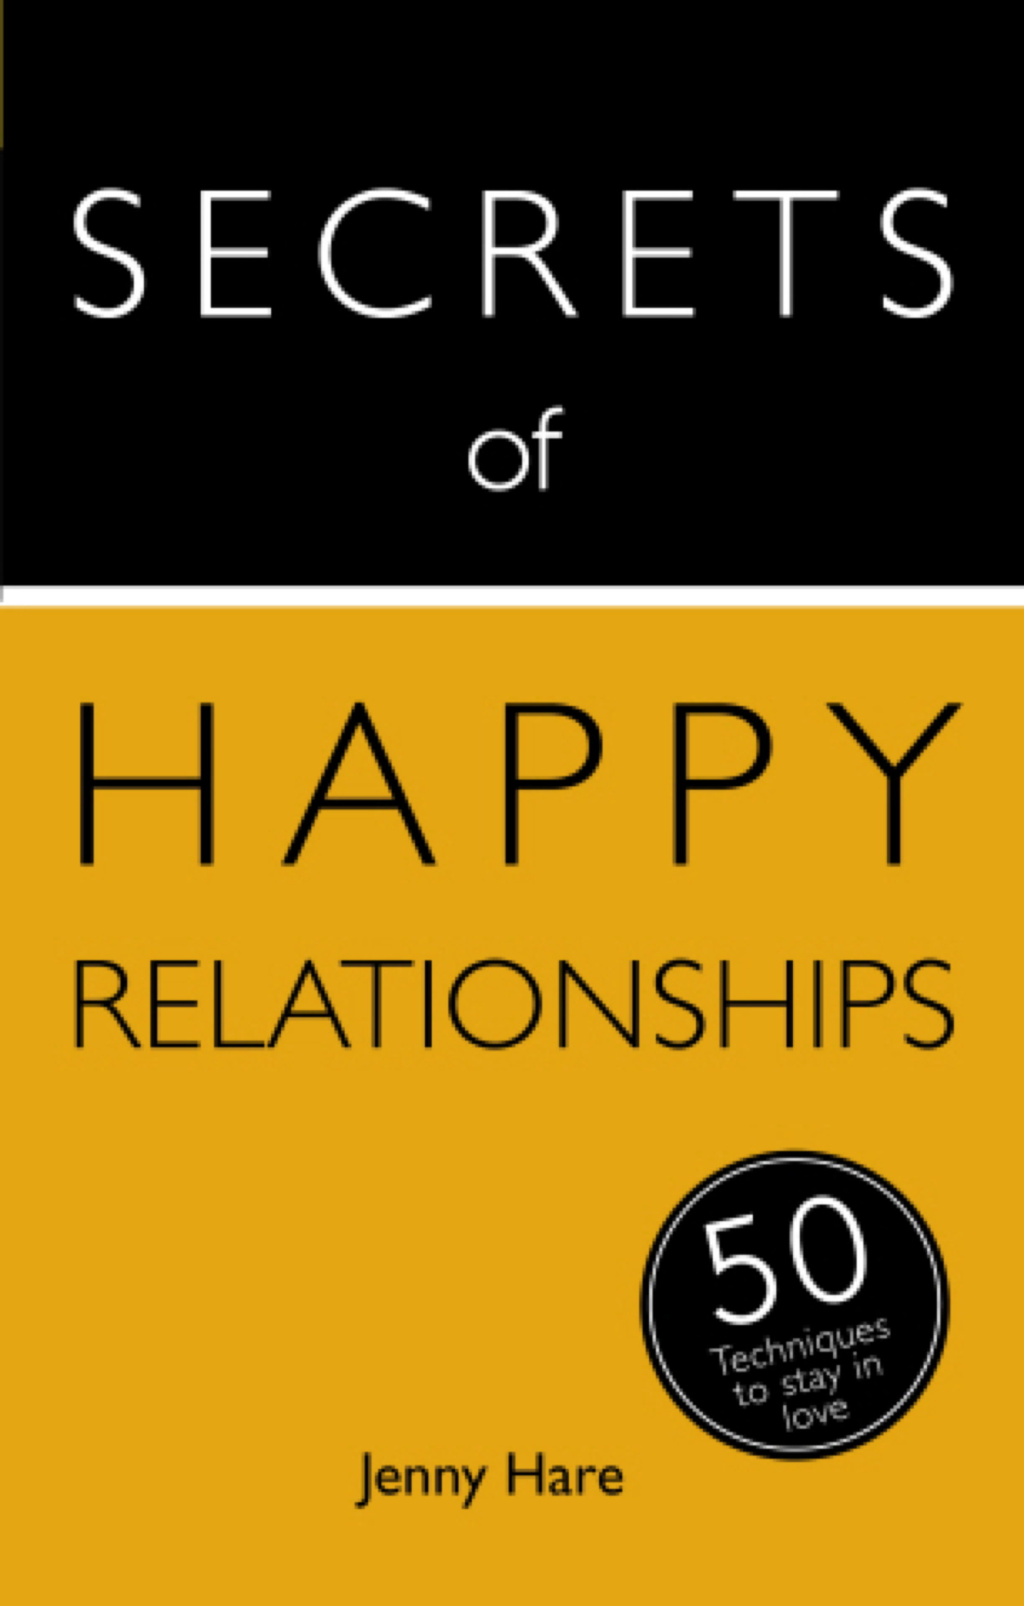 Secrets of Happy Relationships: 50 Techniques to Stay in Love